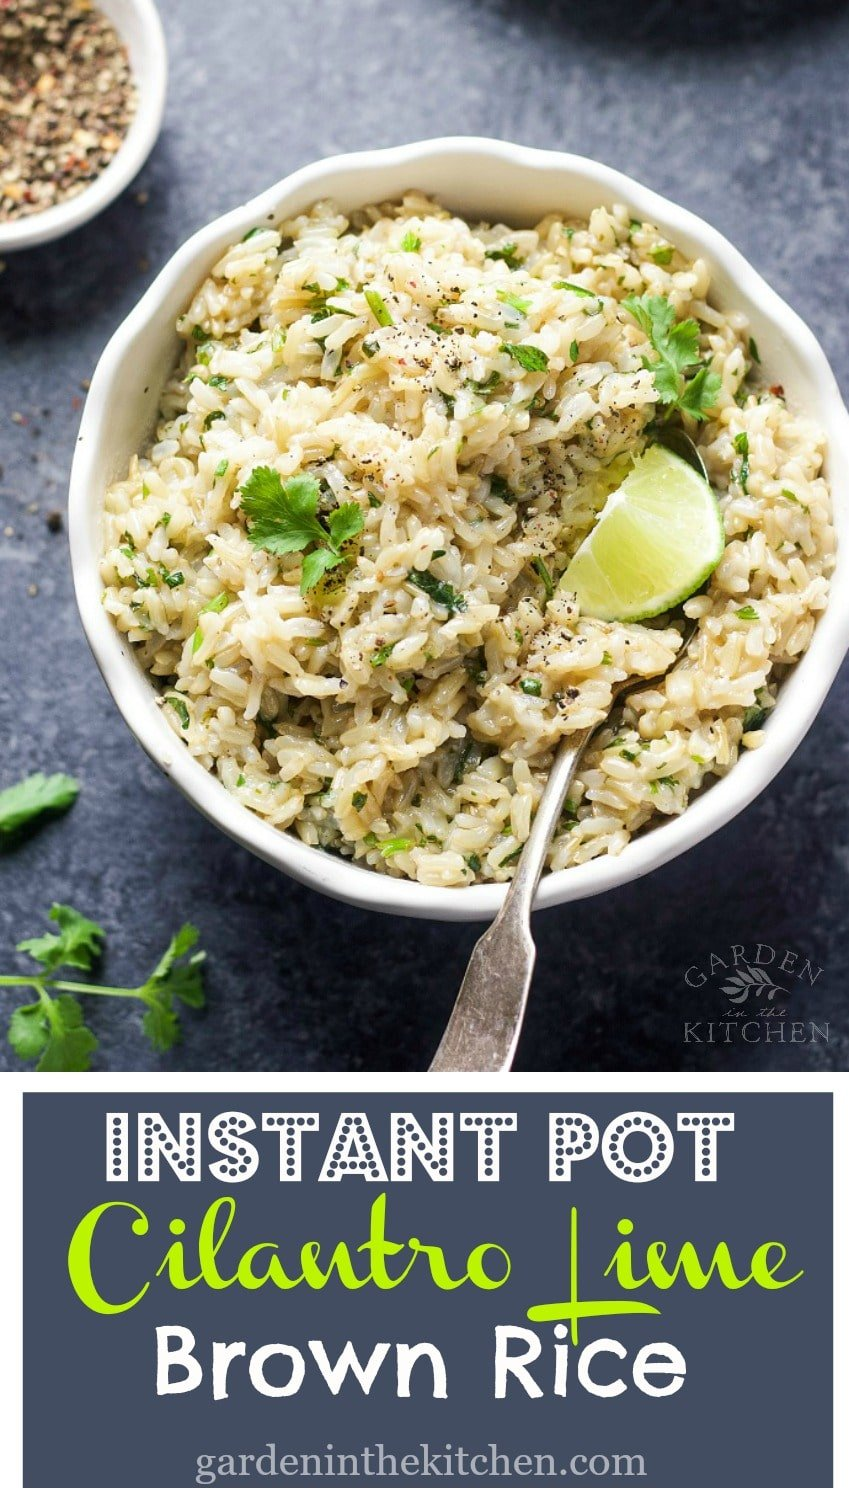 Great side to any meal, this Instant Pot Cilantro Lime Brown Rice is flavorful, easy to make and a healthier alternative than white rice!